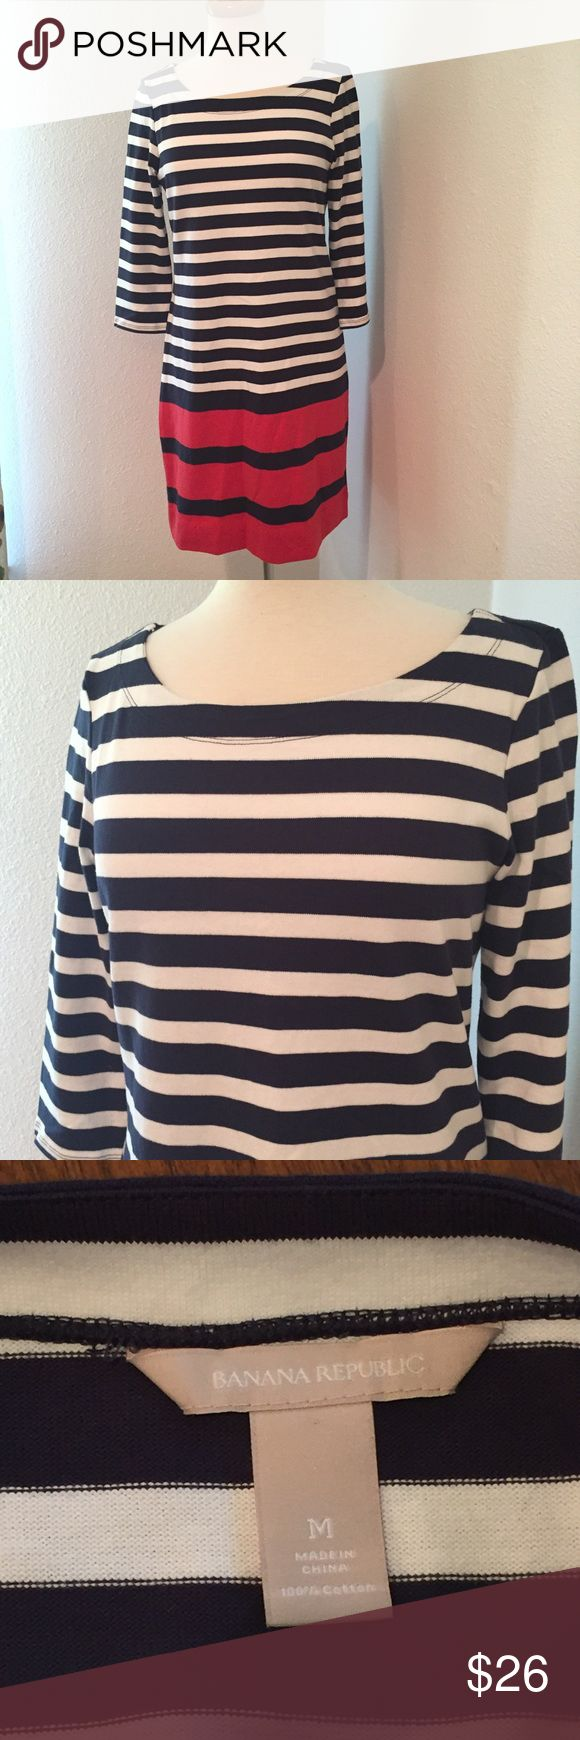 Banana Republic Nautical Striped Shift Dress Perfect dress for summer functions! In very good condition. Banana Republic Dresses